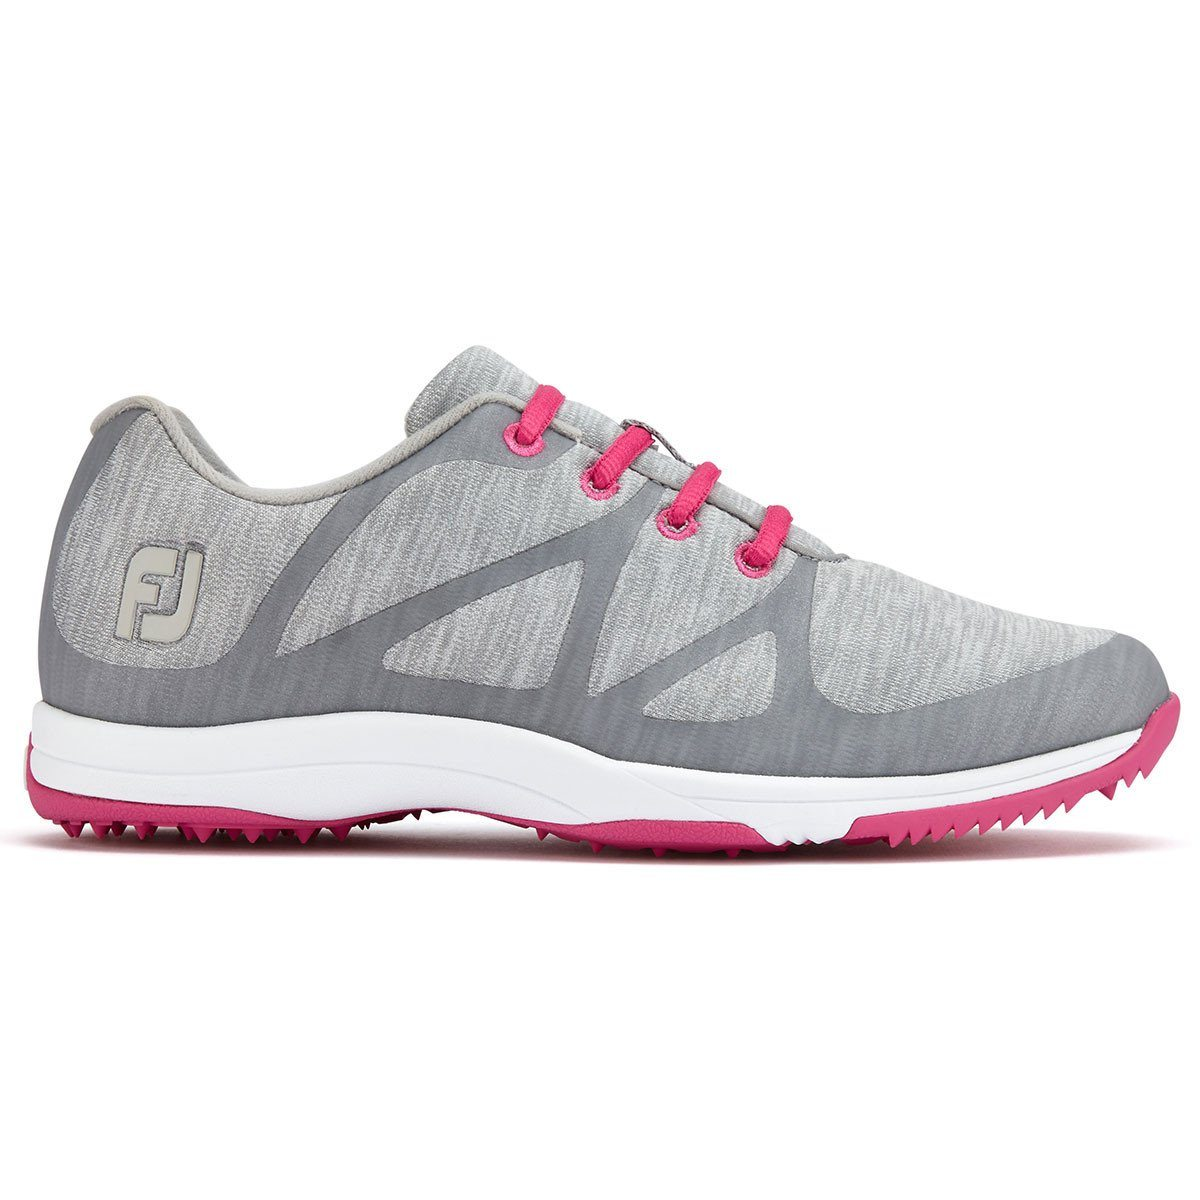 FootJoy Leisure Zapatos de golf FOOTJOY LADIES SHOES FOOTJOY